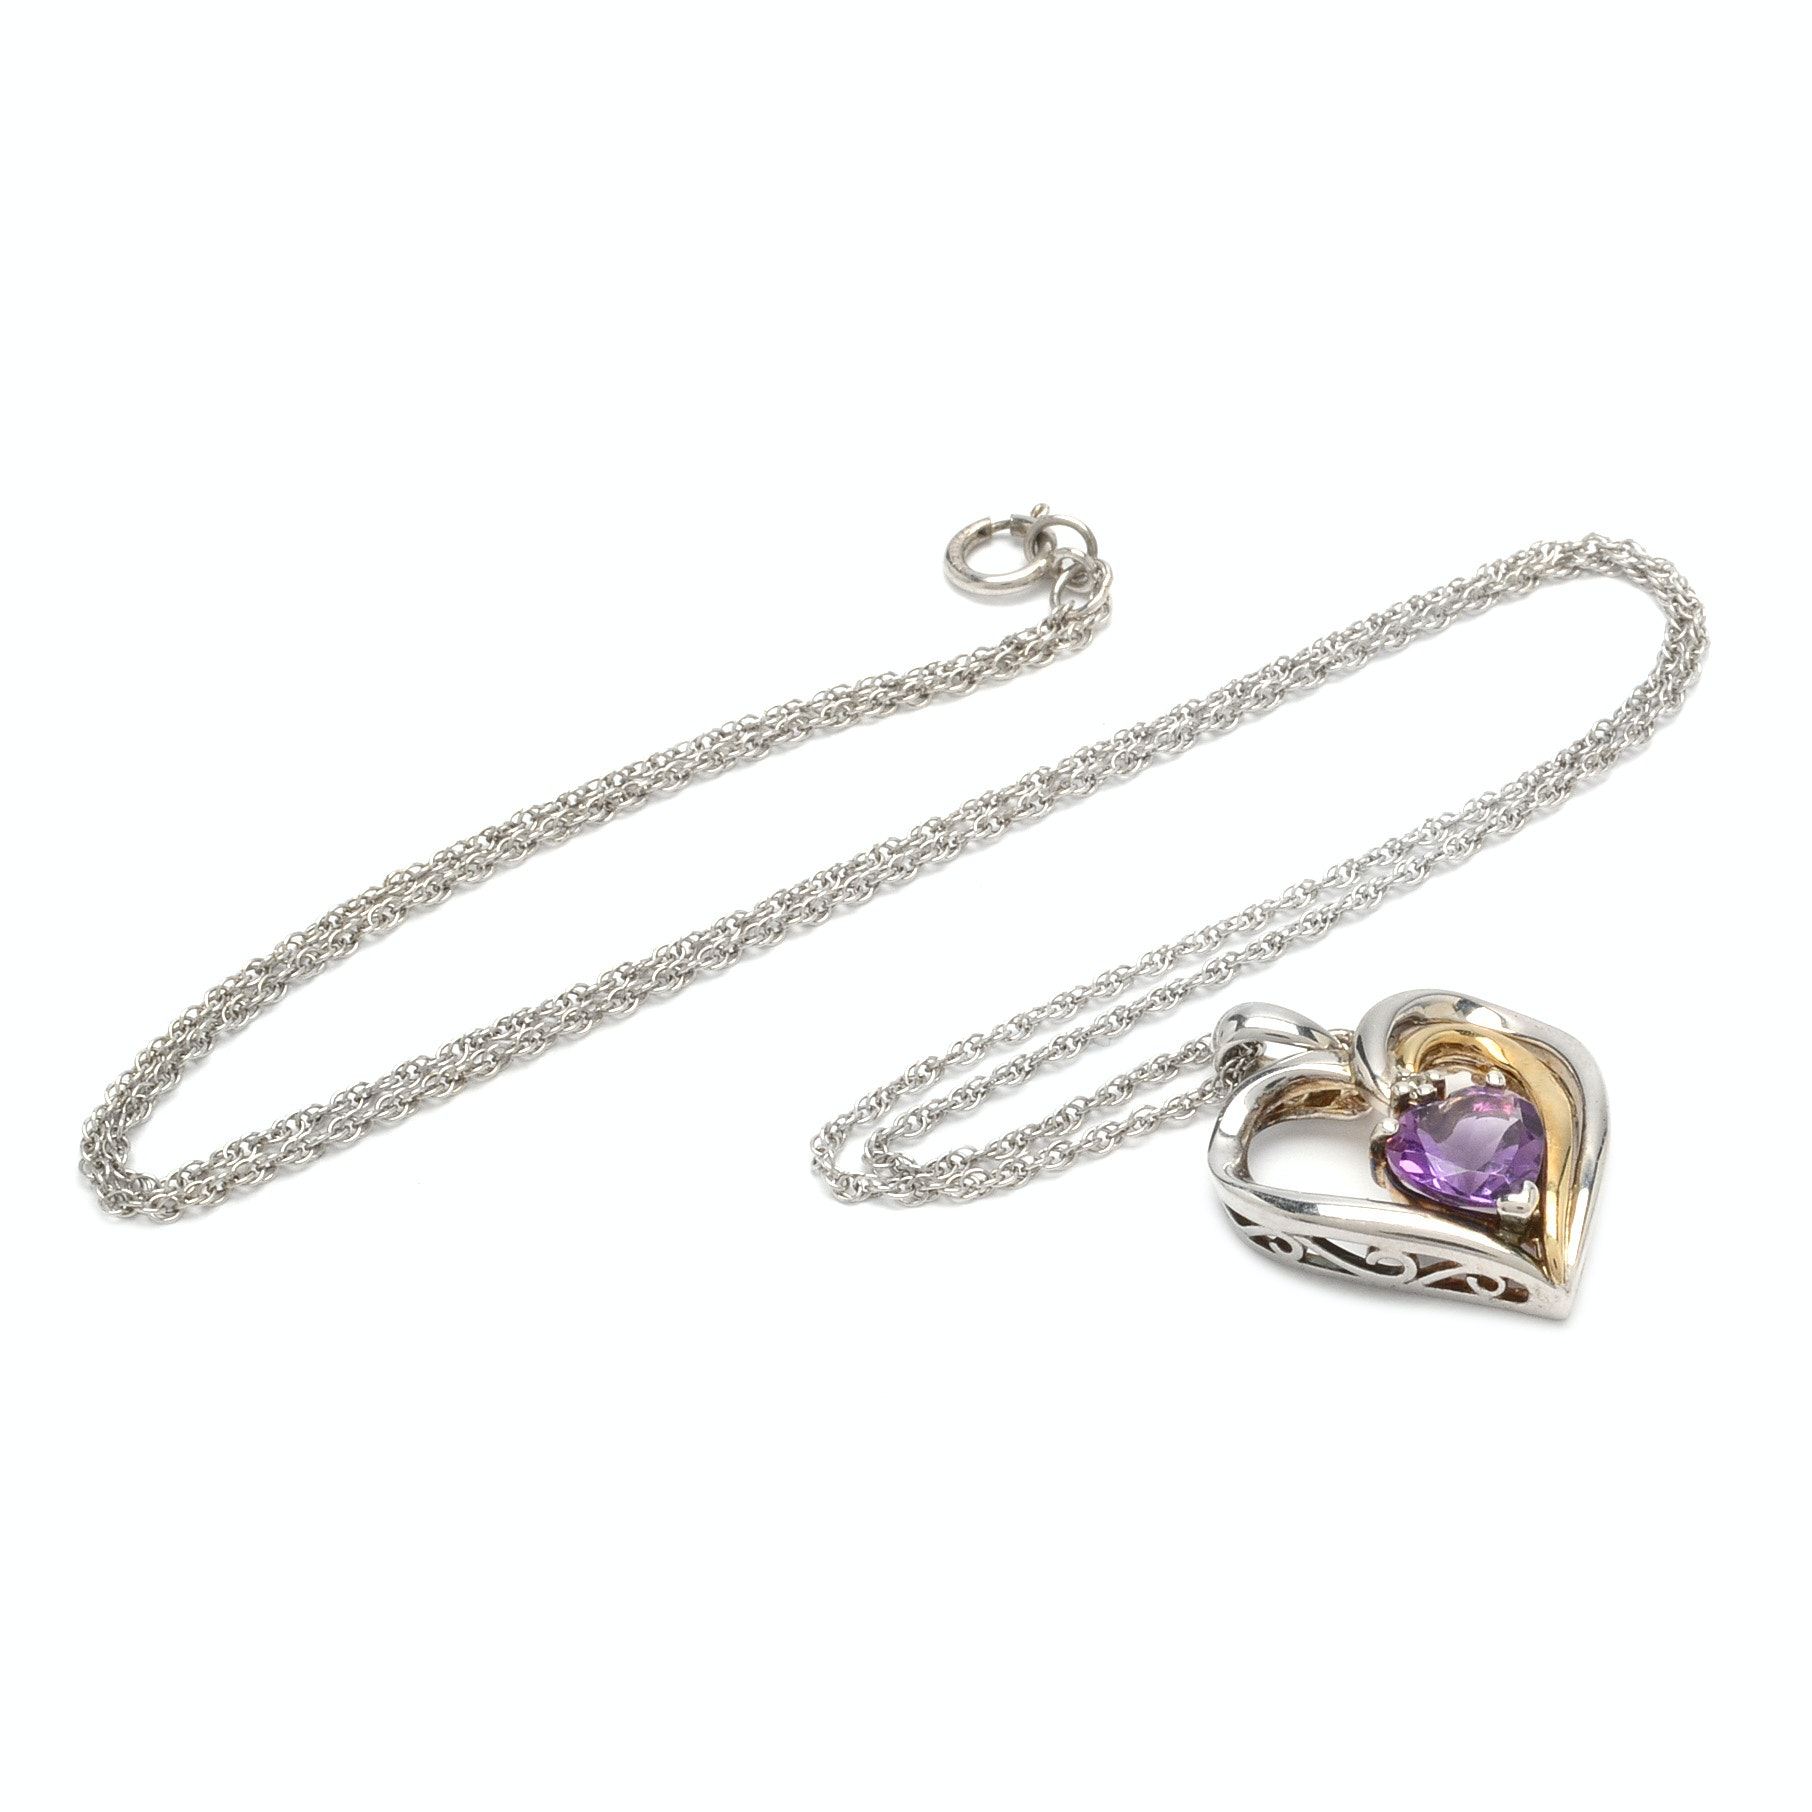 Alwand Vahan Sterling Silver Heart Shaped Amethyst and Diamond Pendant Necklace